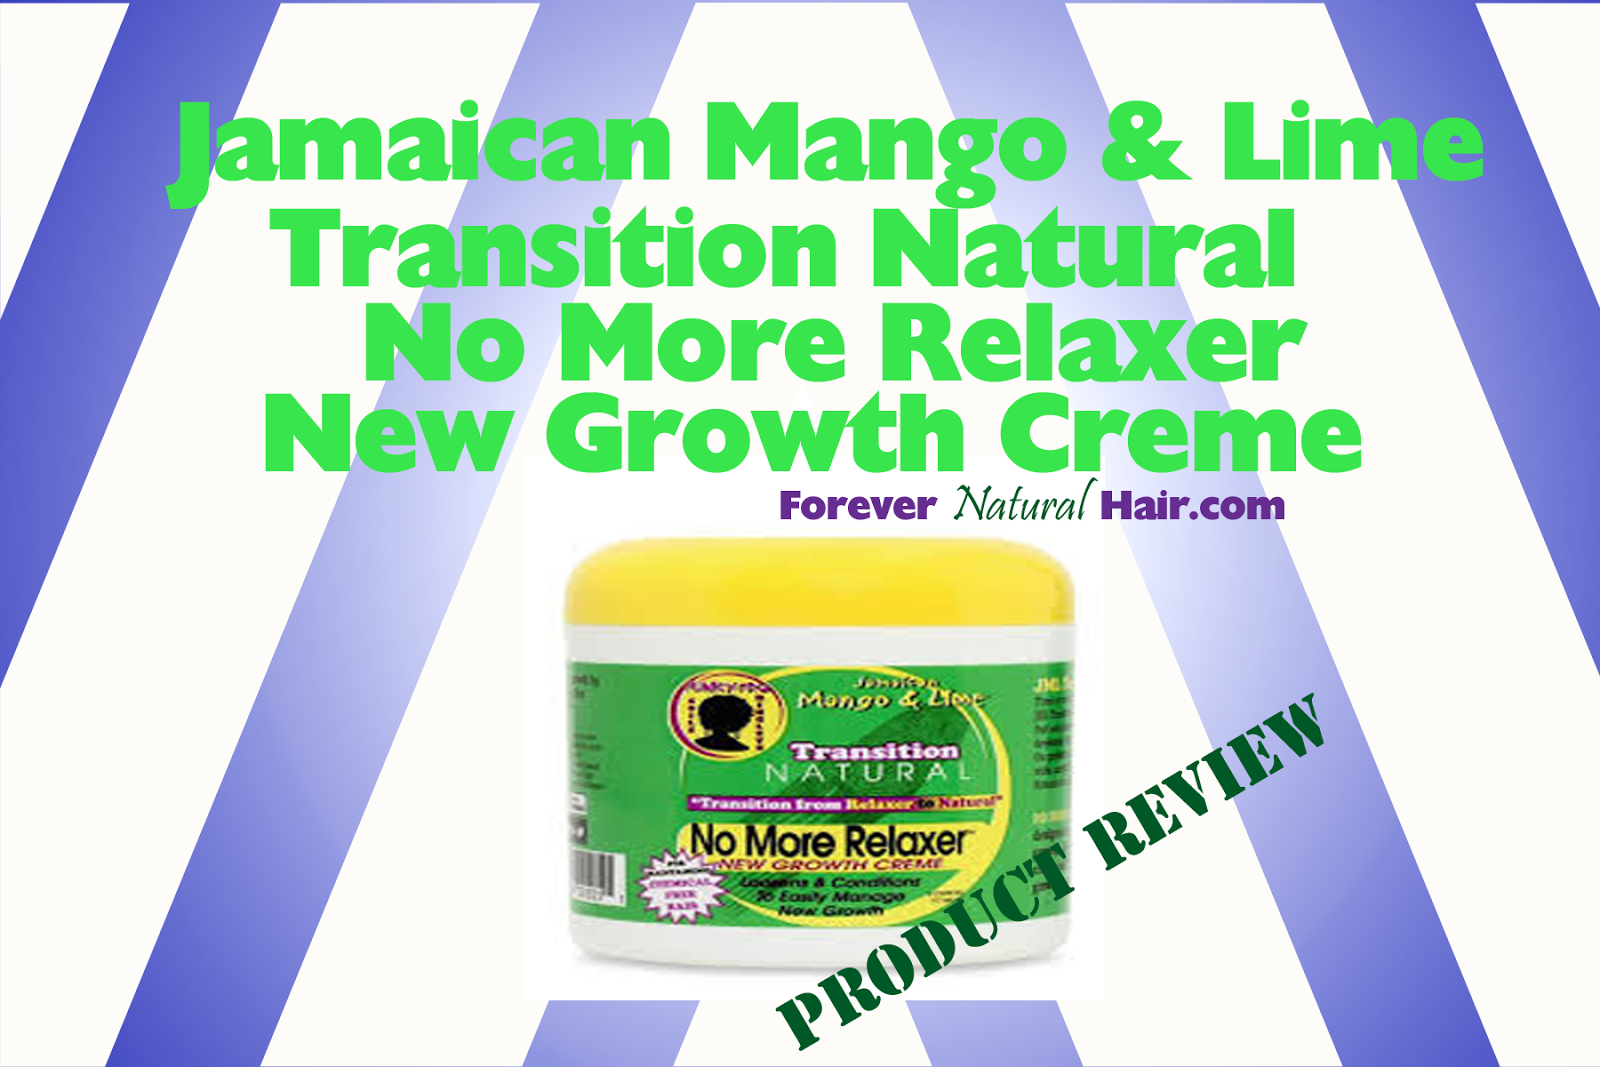 Jamaican Mango and Lime Transition Natural No More Relaxer New Growth Creme Product Review